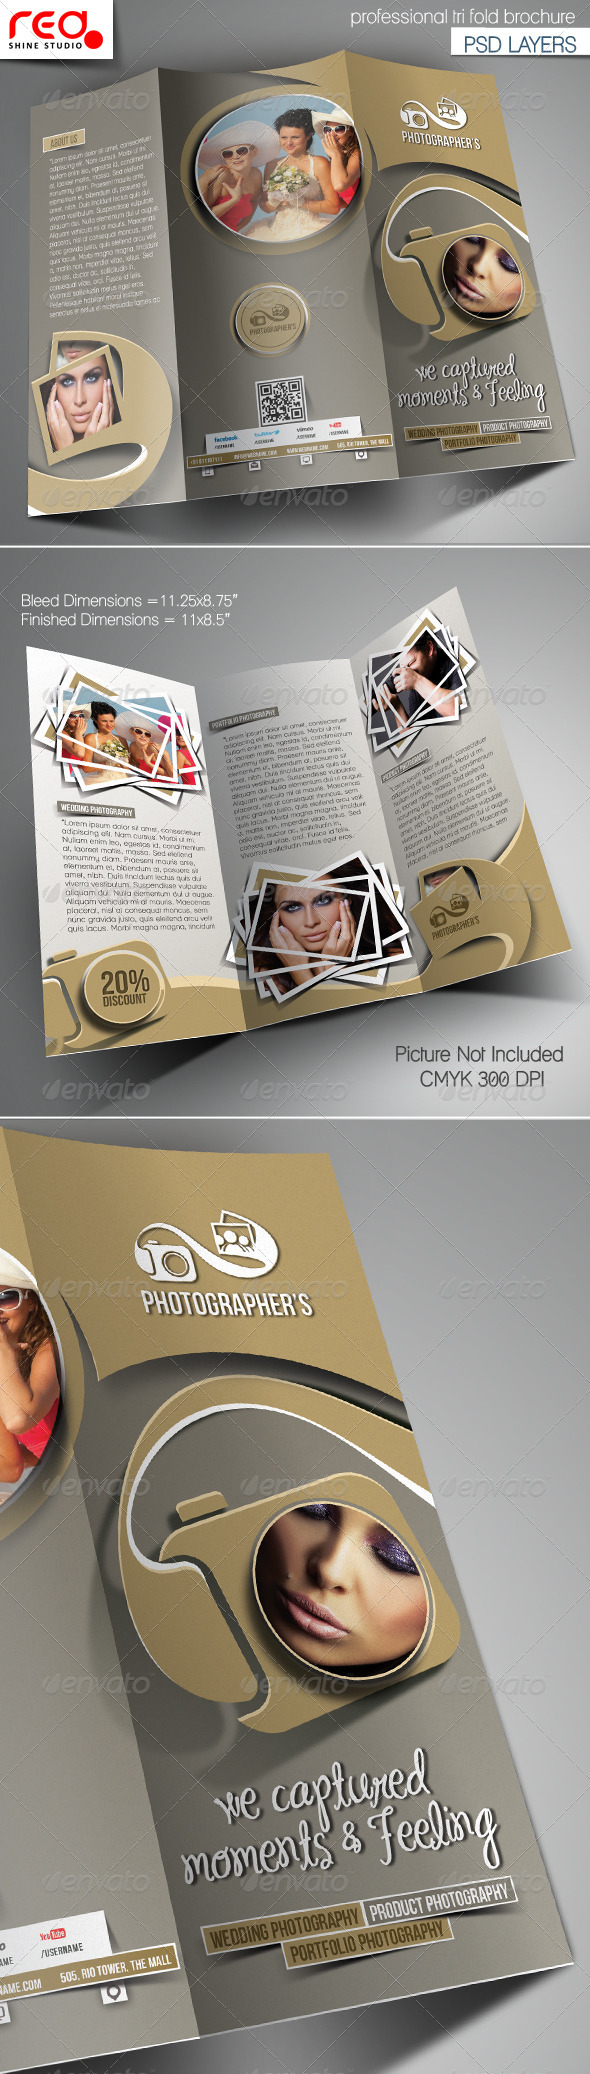 Photography Studio Trifold Brochure Template - Corporate Brochures